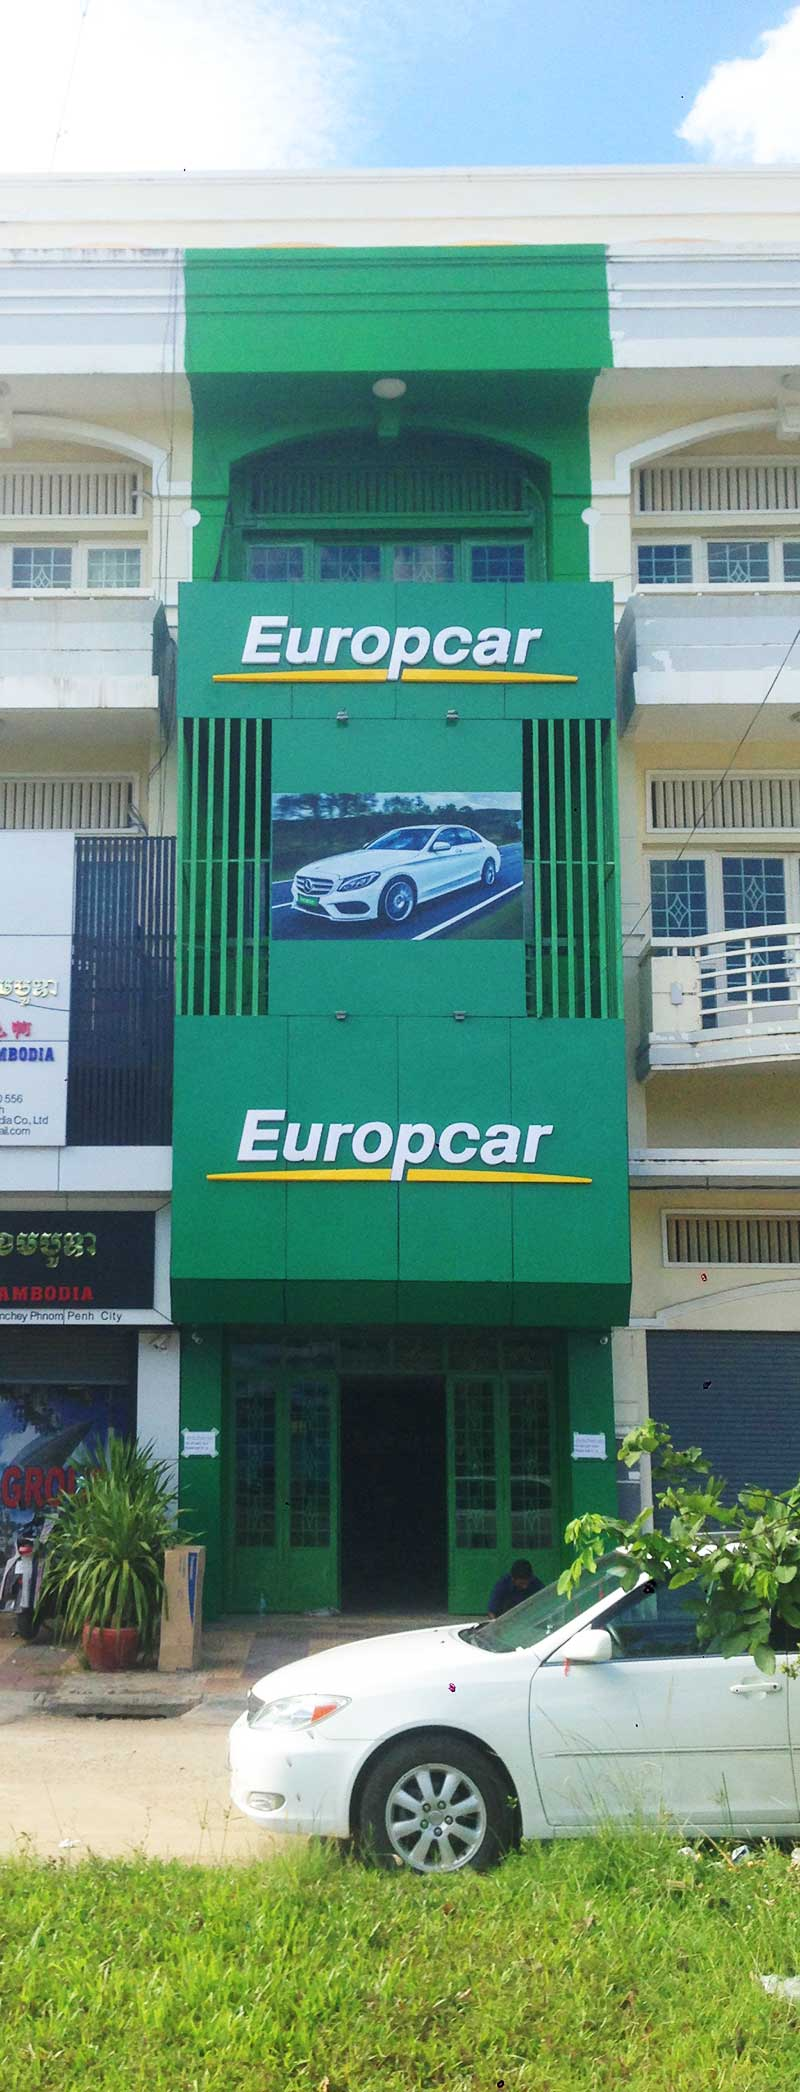 branded-sign-europ-car-by-capital-arts-design (2)